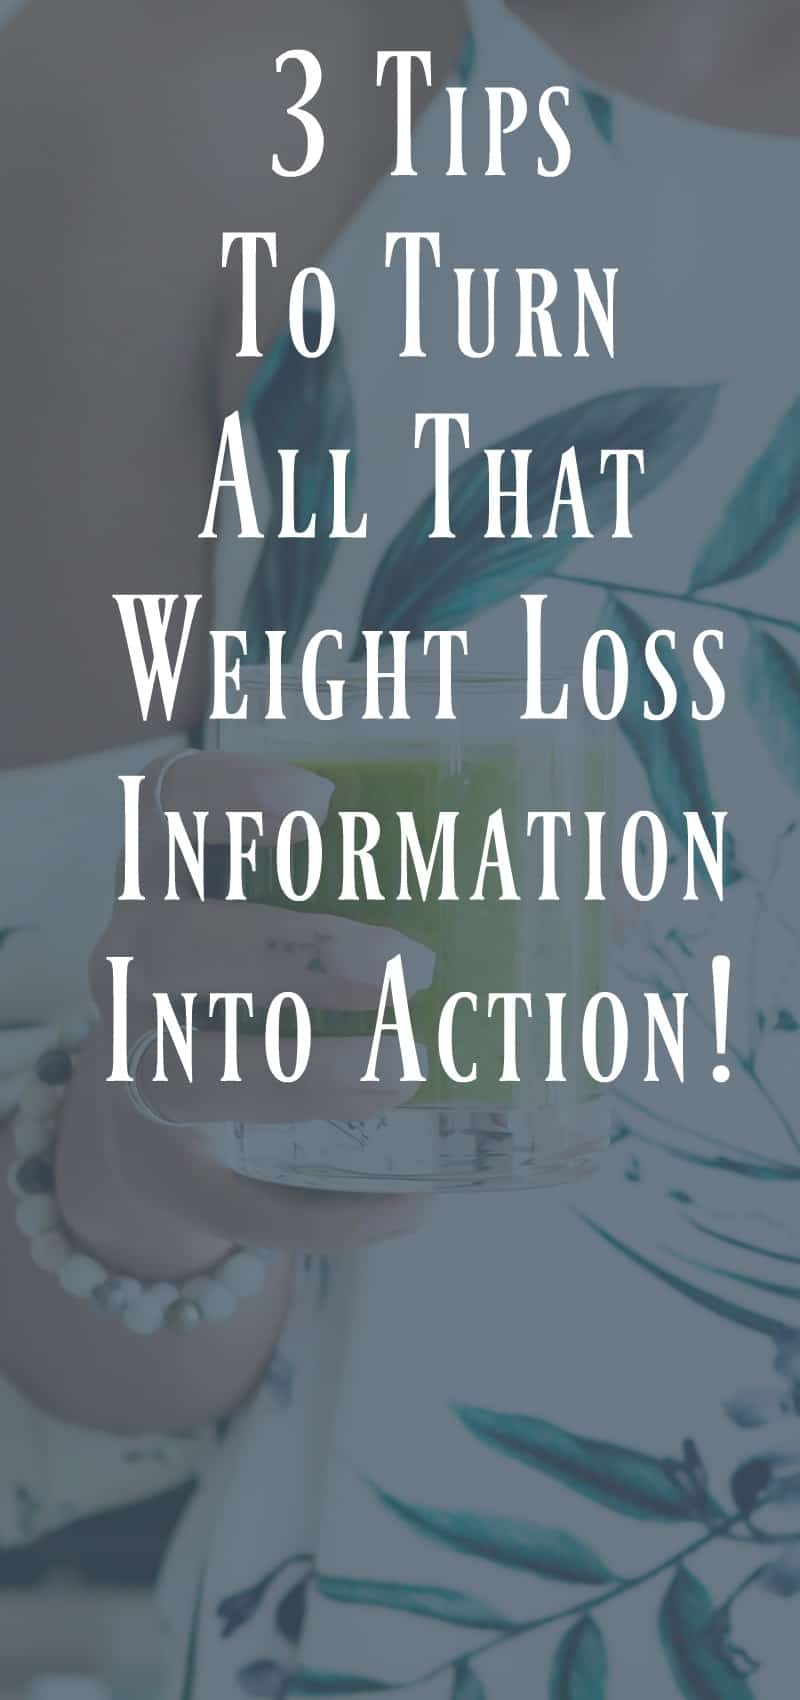 3 Tips to Turn Weight Loss Information into action